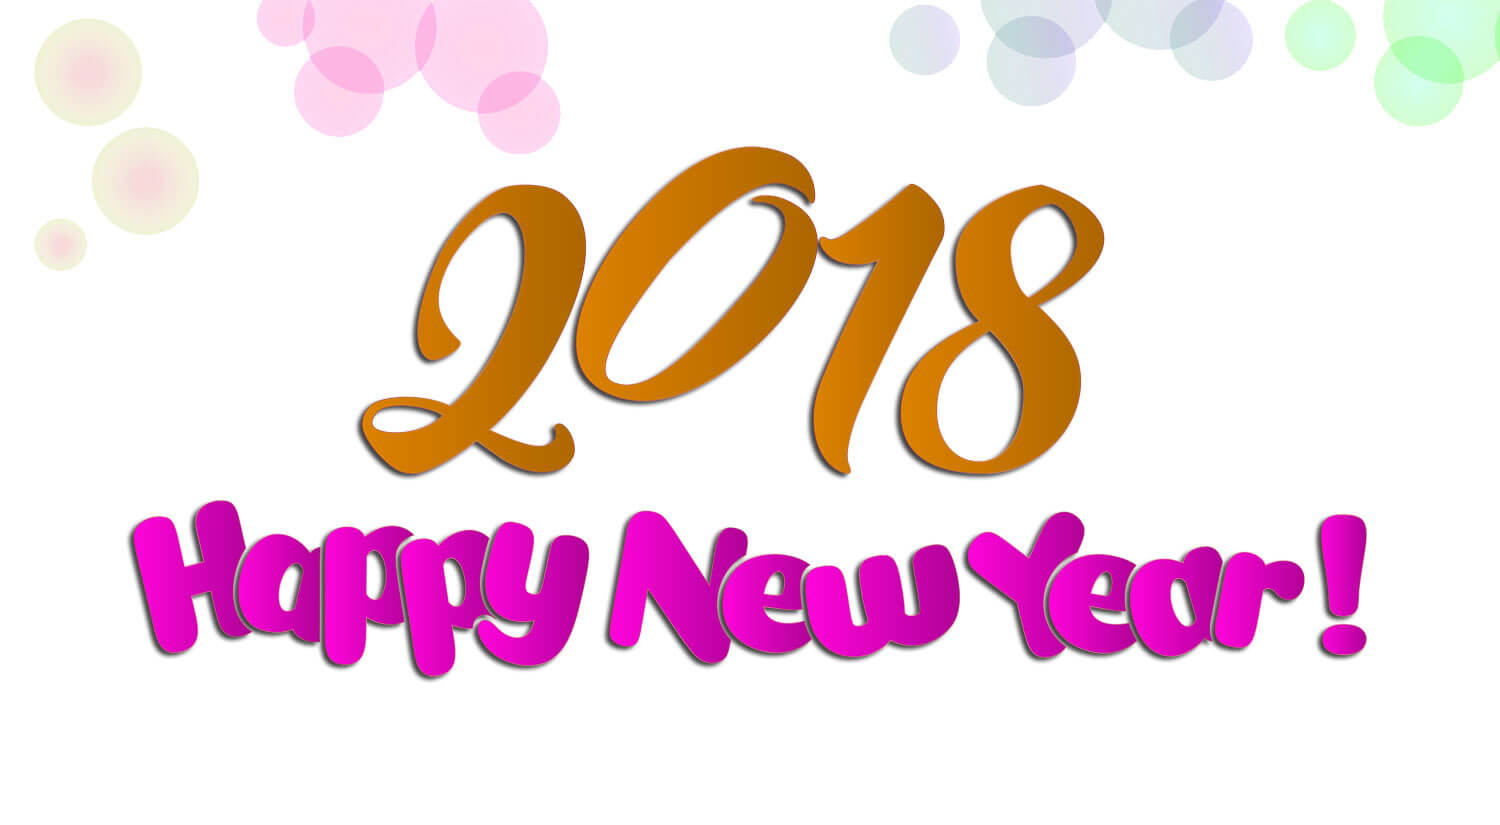 Happy New Year 2018 Wishes Sms Facebook Status Whatsapp Messages